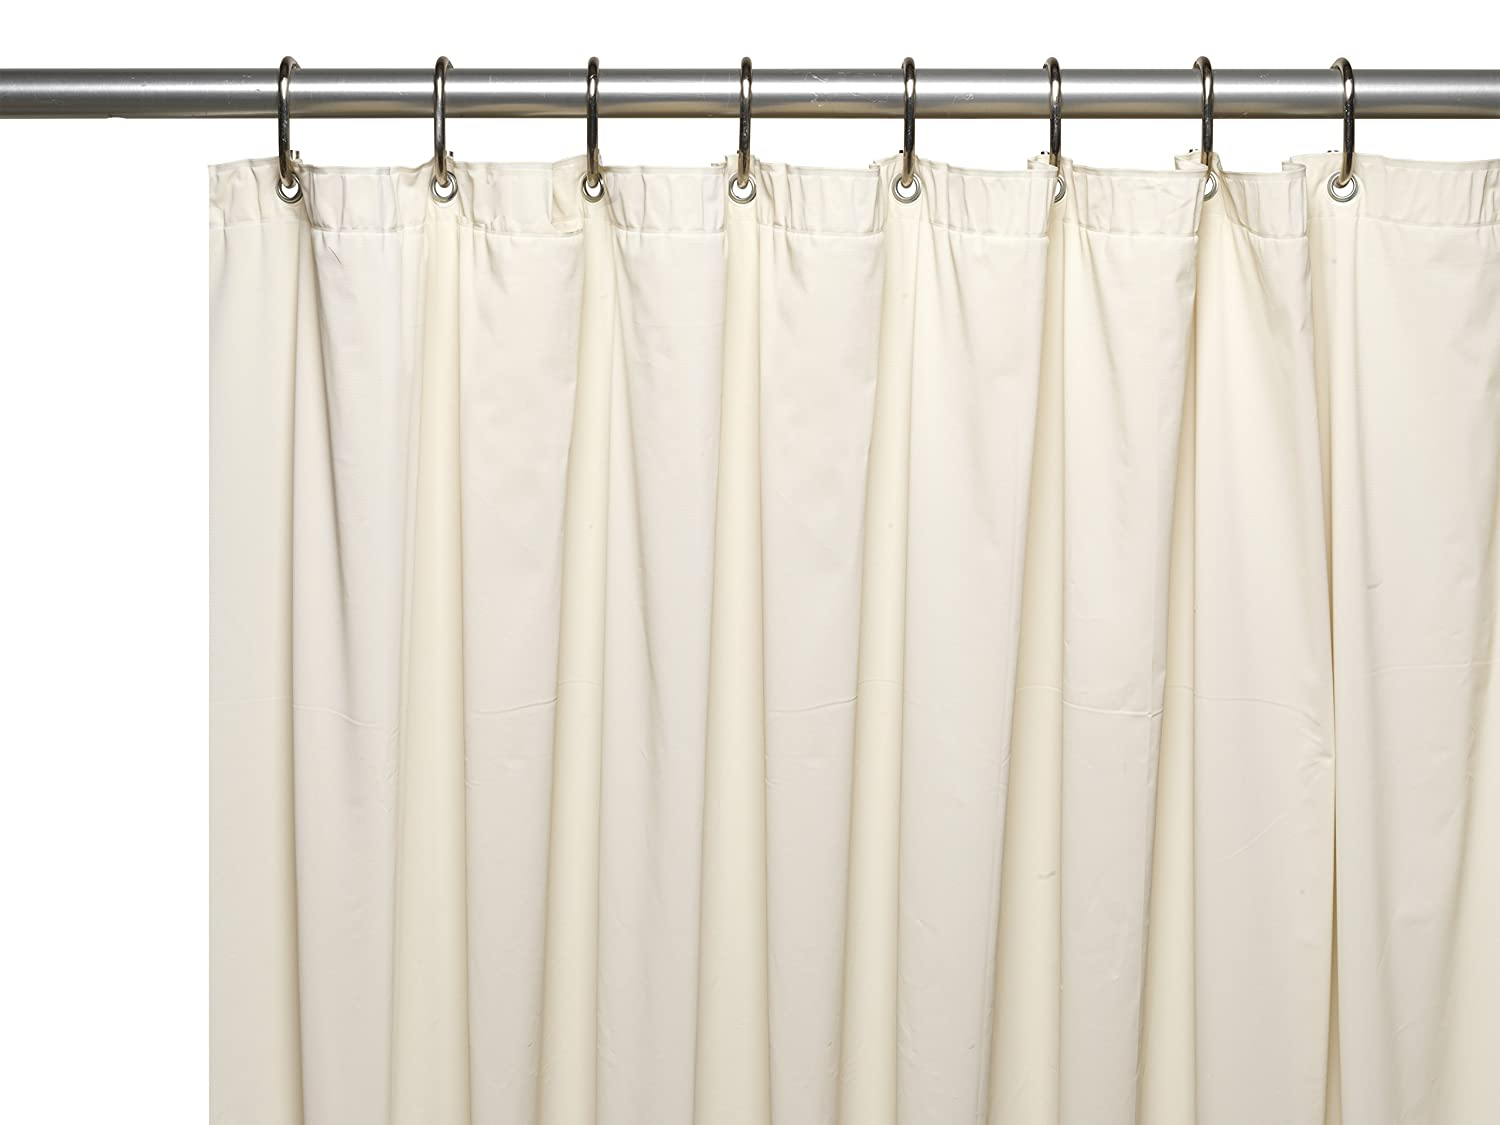 Carnation Home Fashions Special Sized Wide 10 Gauge Vinyl Shower Curtain Liner 48' Bone USC-10/48W/15